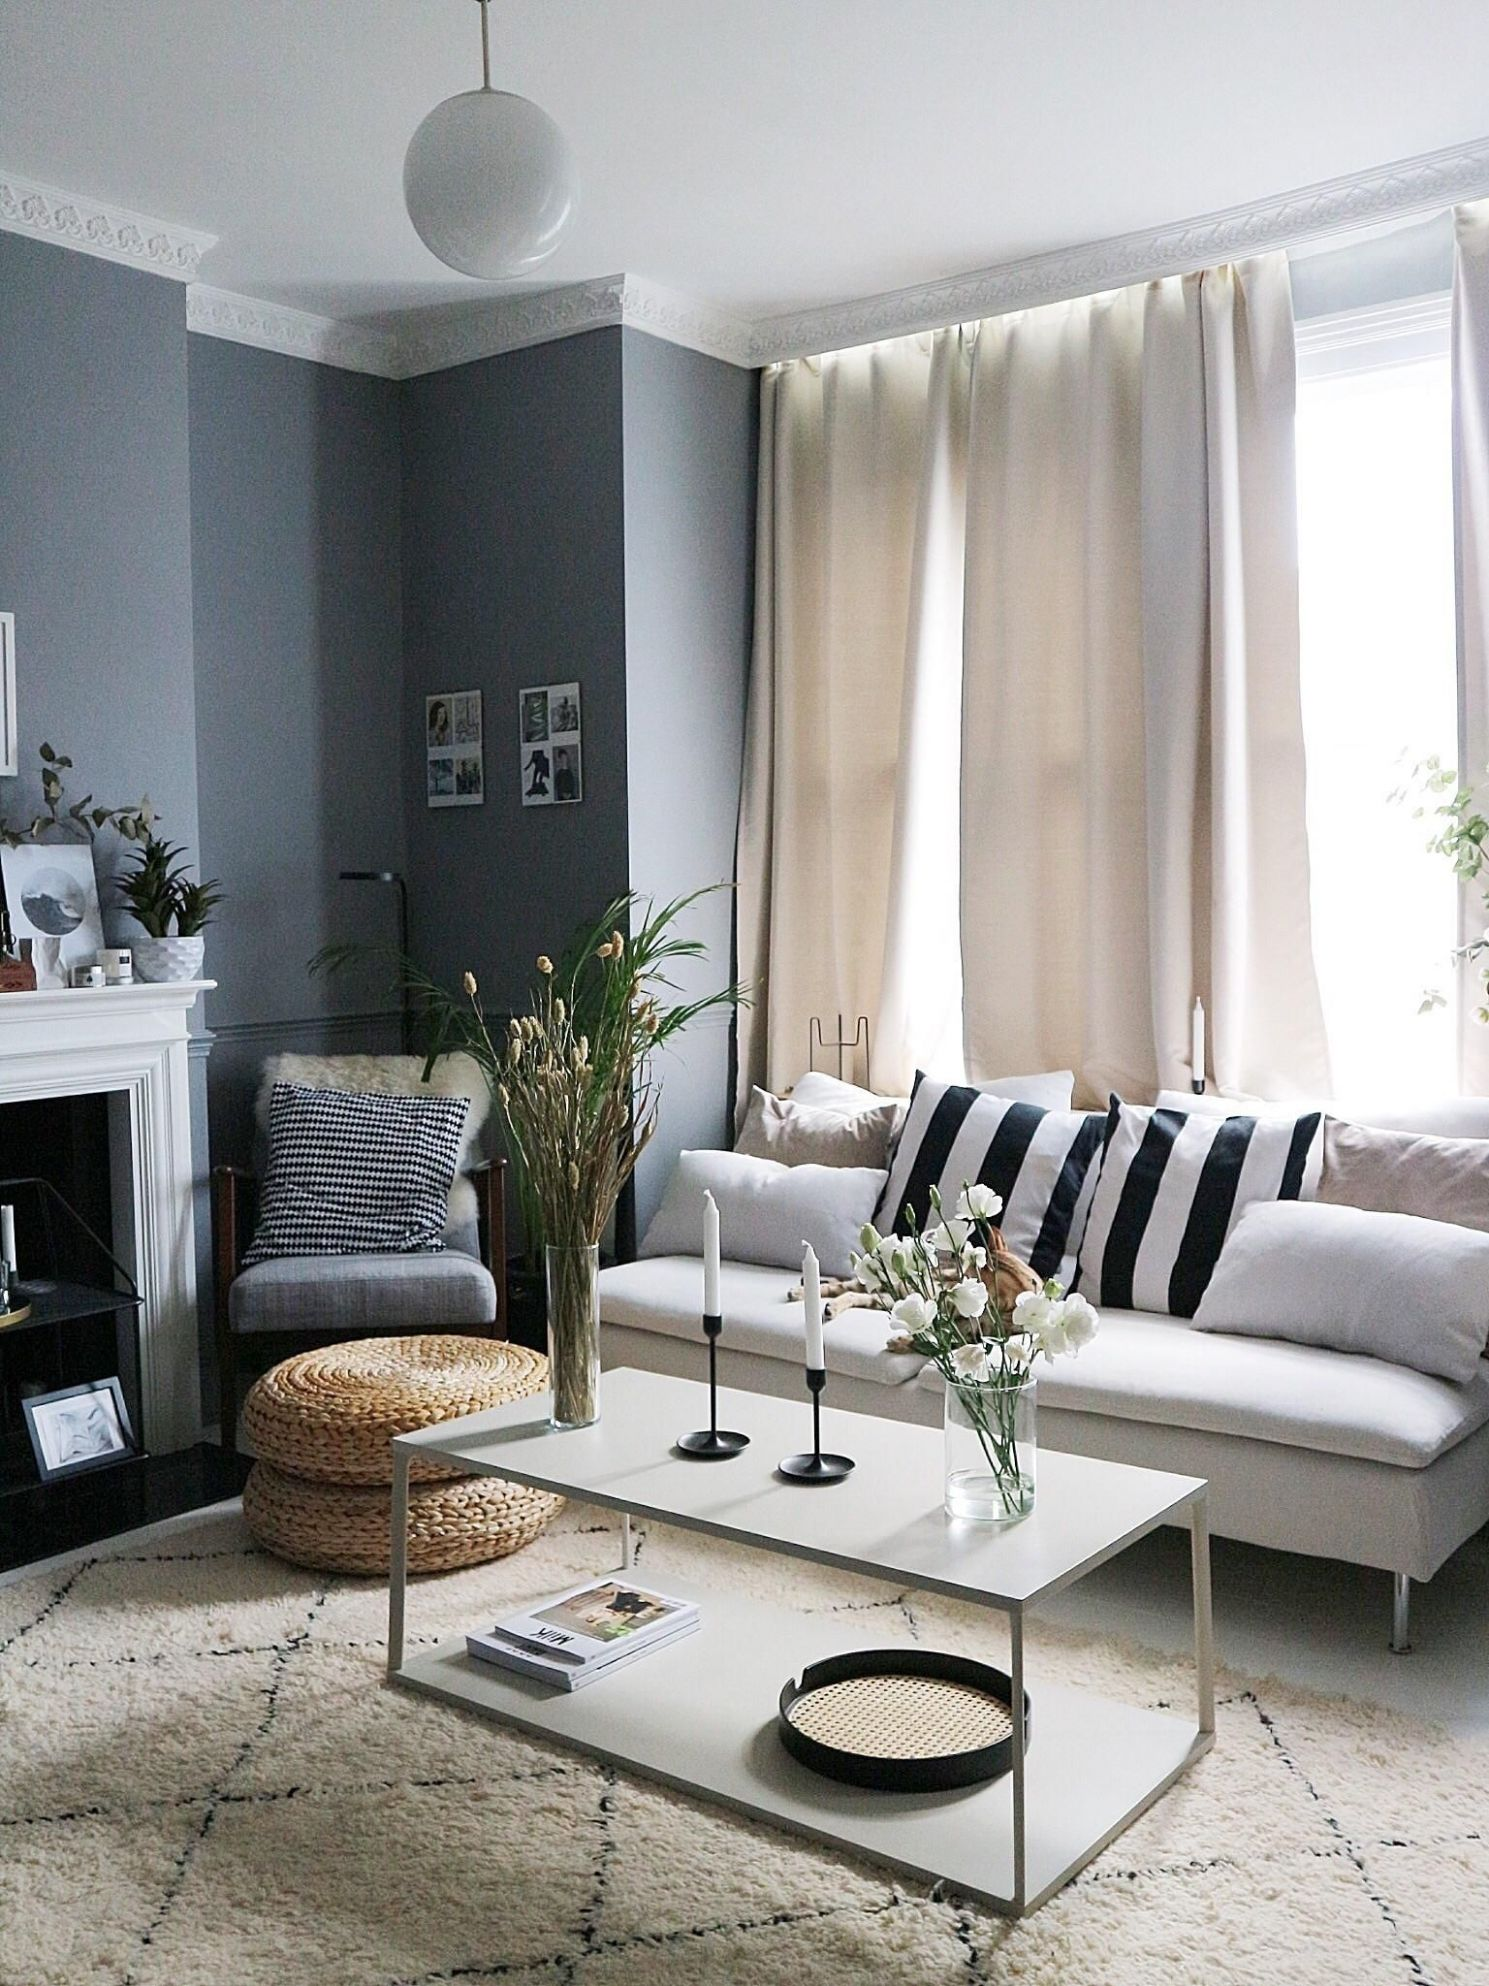 Living Room Decorating Ideas Victorian House in 10 | London ..